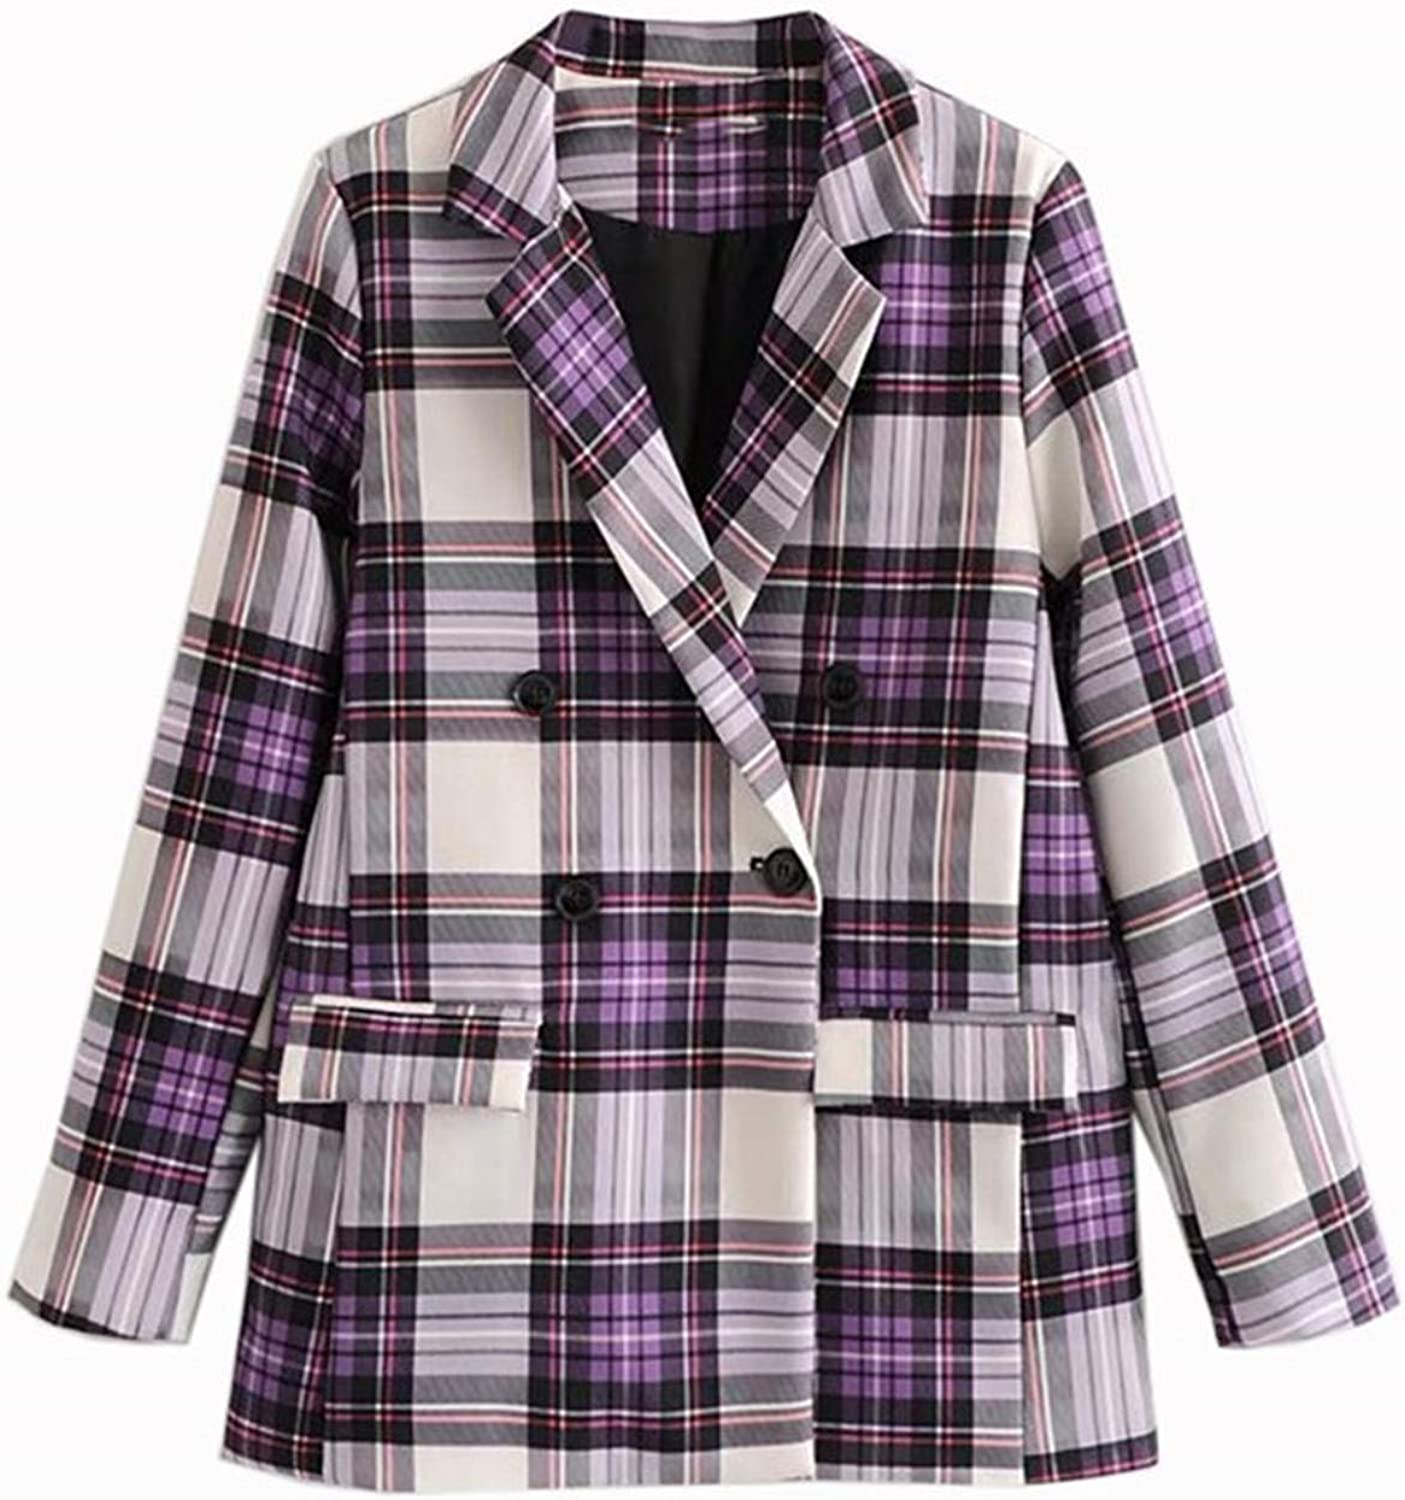 Beancan Women Elegant Plaid Blazer Long Sleeve Outerwear Notched Collar Pocket Office Lady Casual Tops L